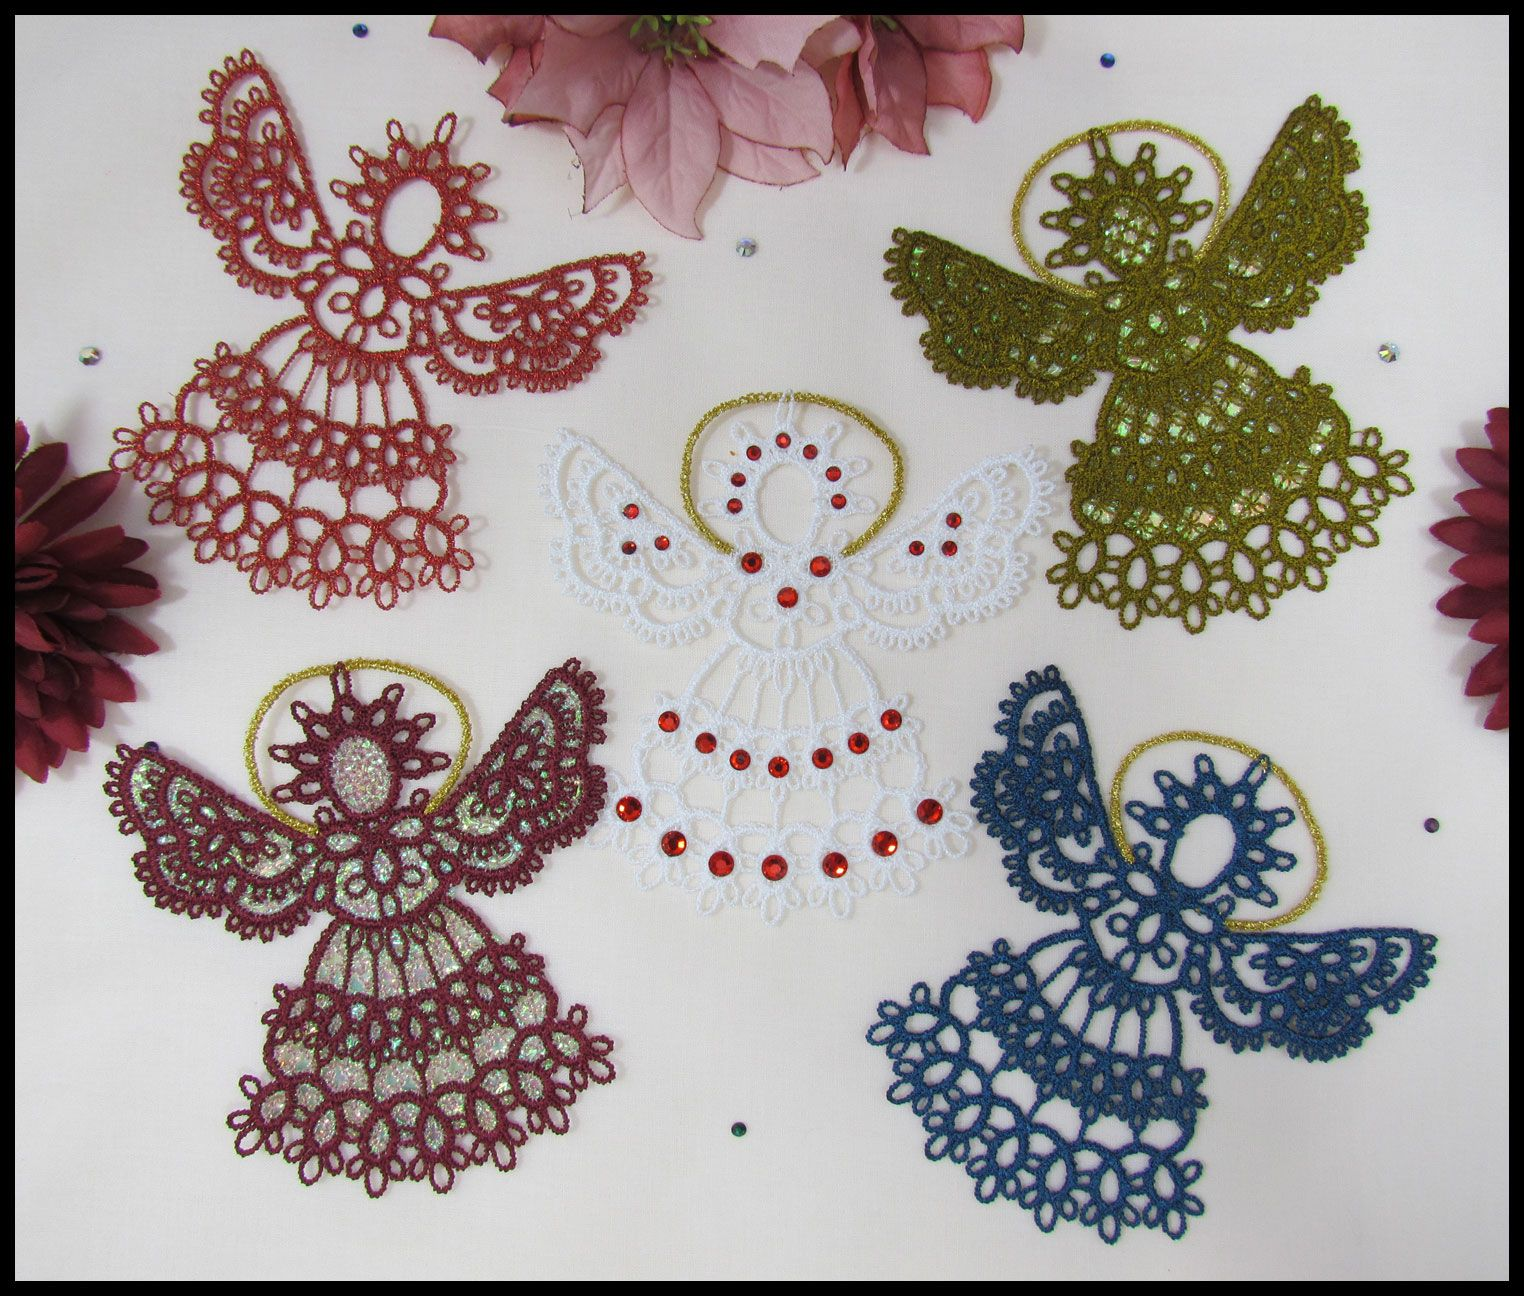 Completely free-standing tatting designs done in the machine embroidery hoop! I so wish this was real tatting.